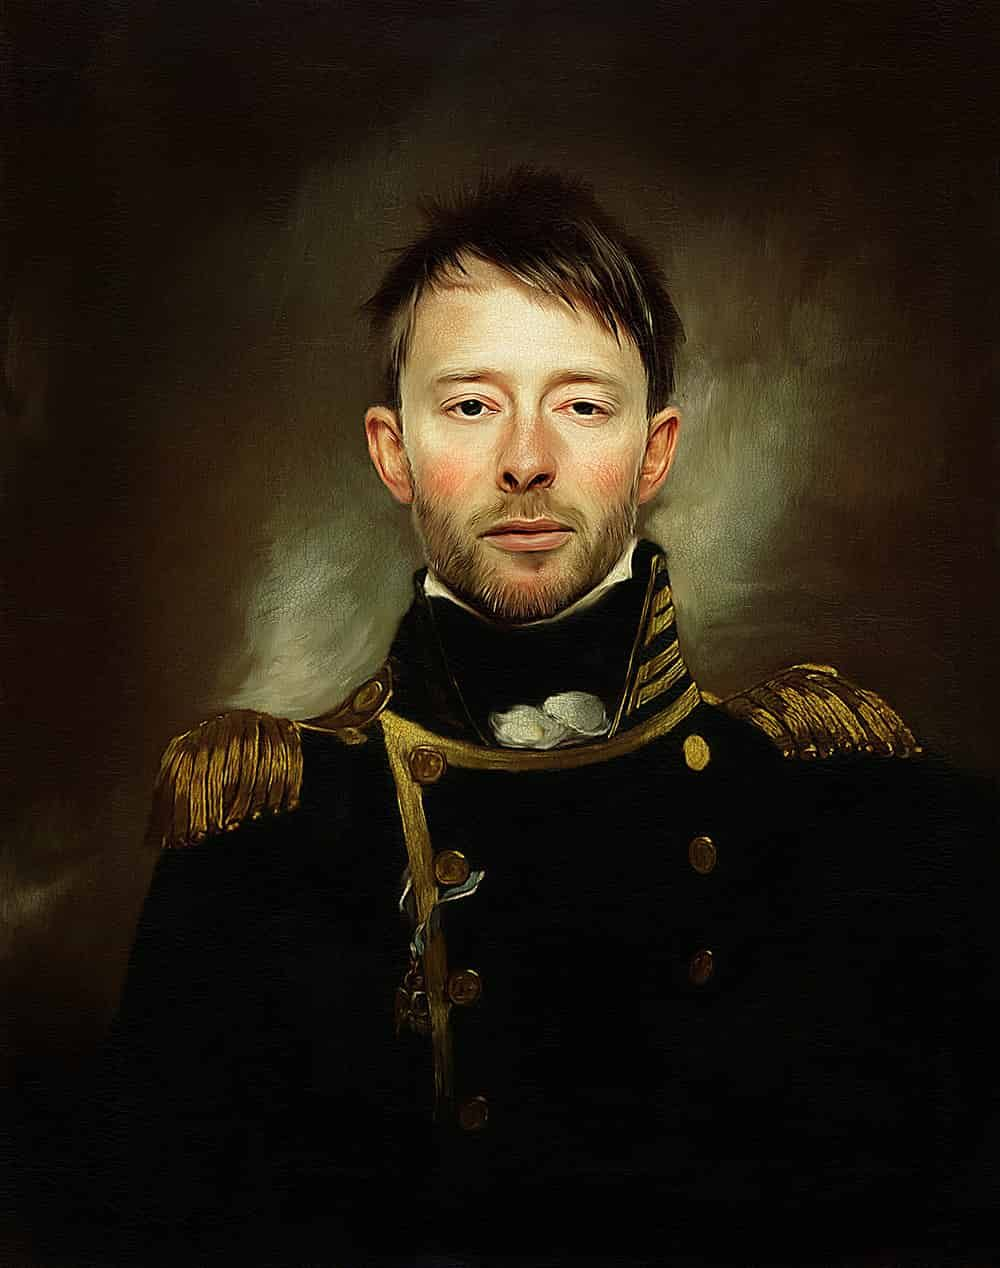 Thom Yorke Photoshop Portrait In Oils With Realistic Texture Portrait Photoshop Photoshop Painting Tutorial Photoshop Painting